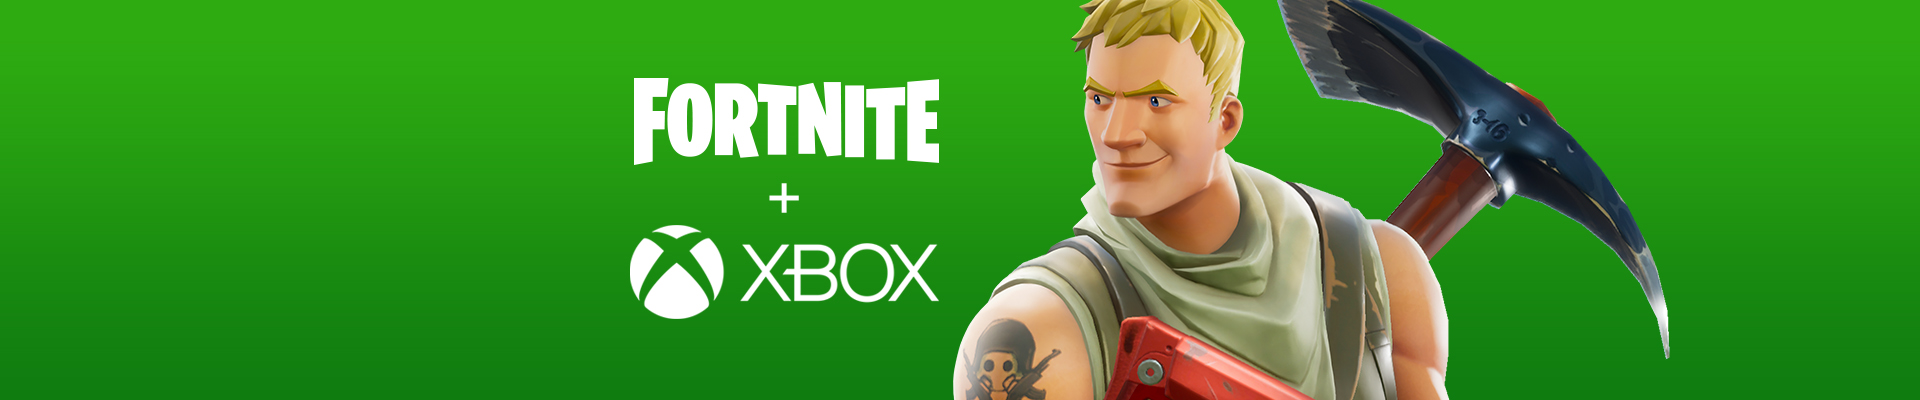 Fortnite Xbox Cross-Platform